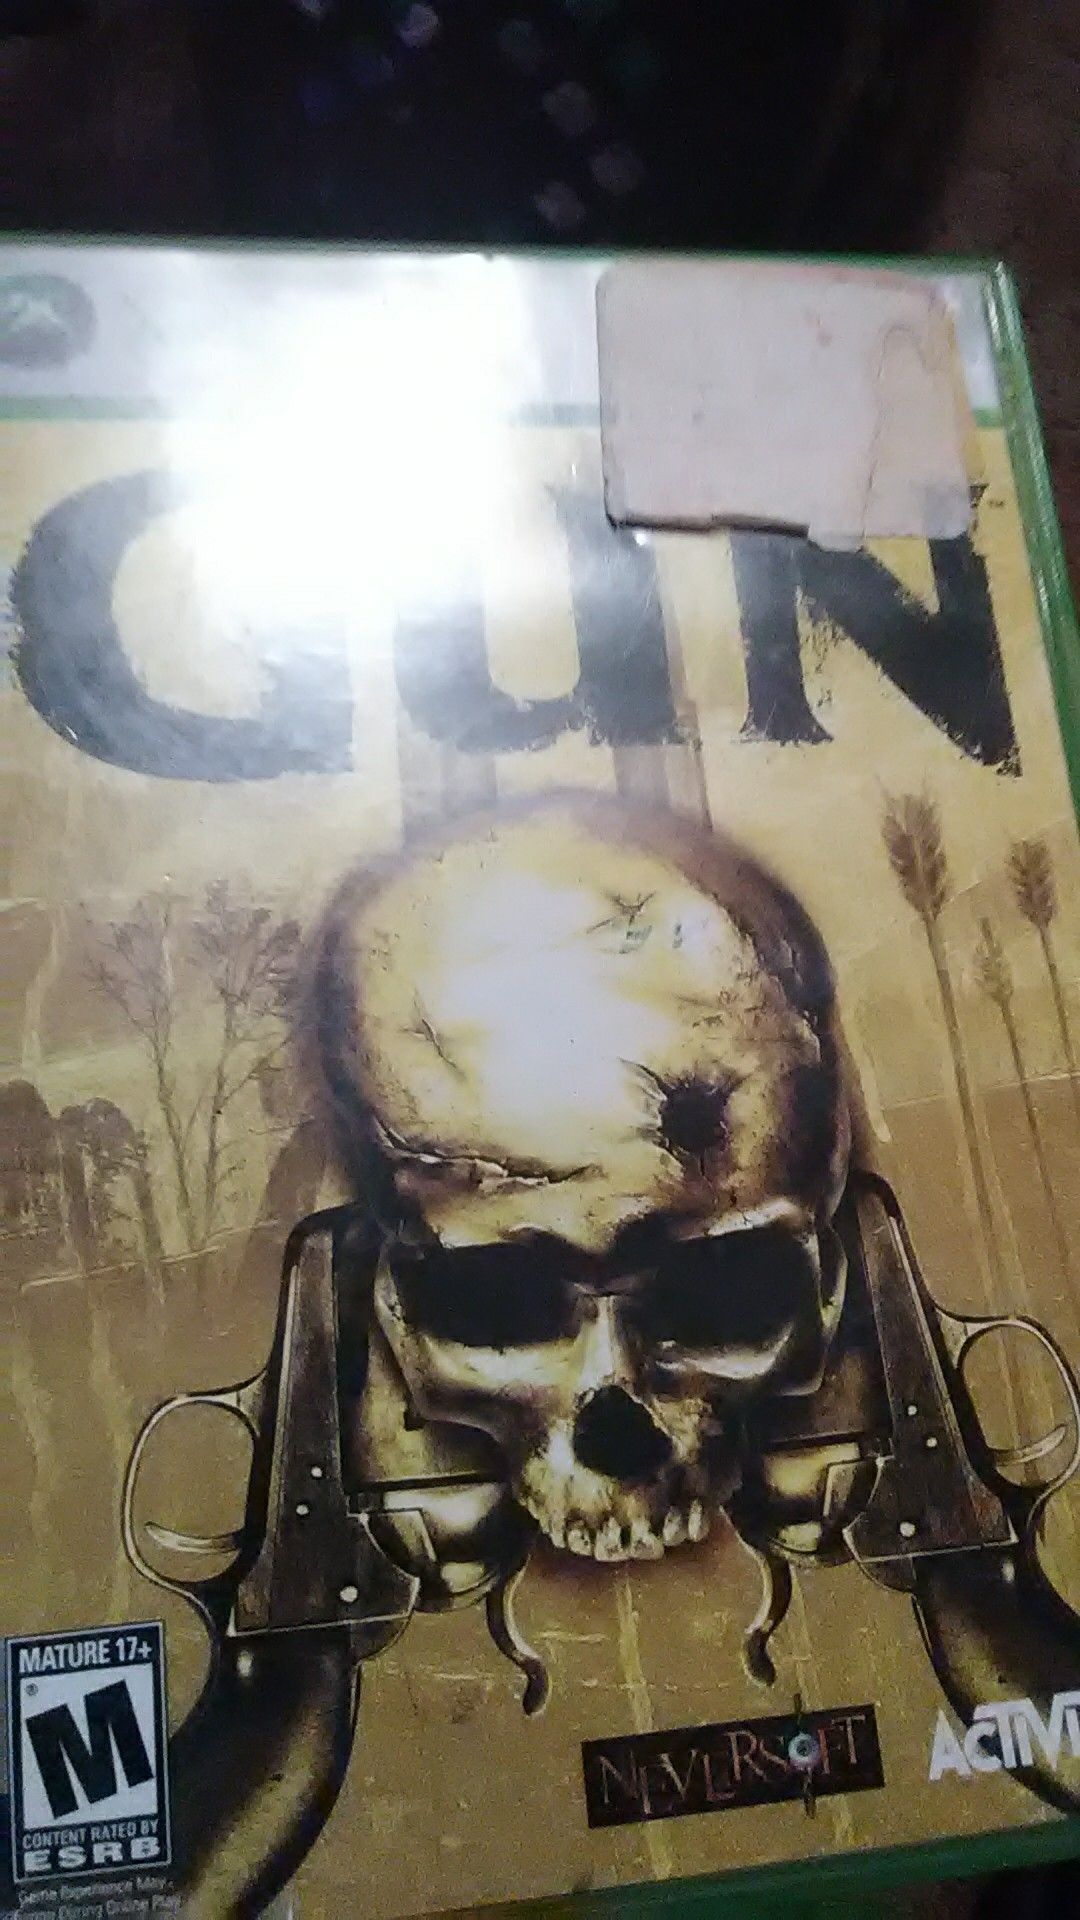 Some PS4 games on Xbox 360 games